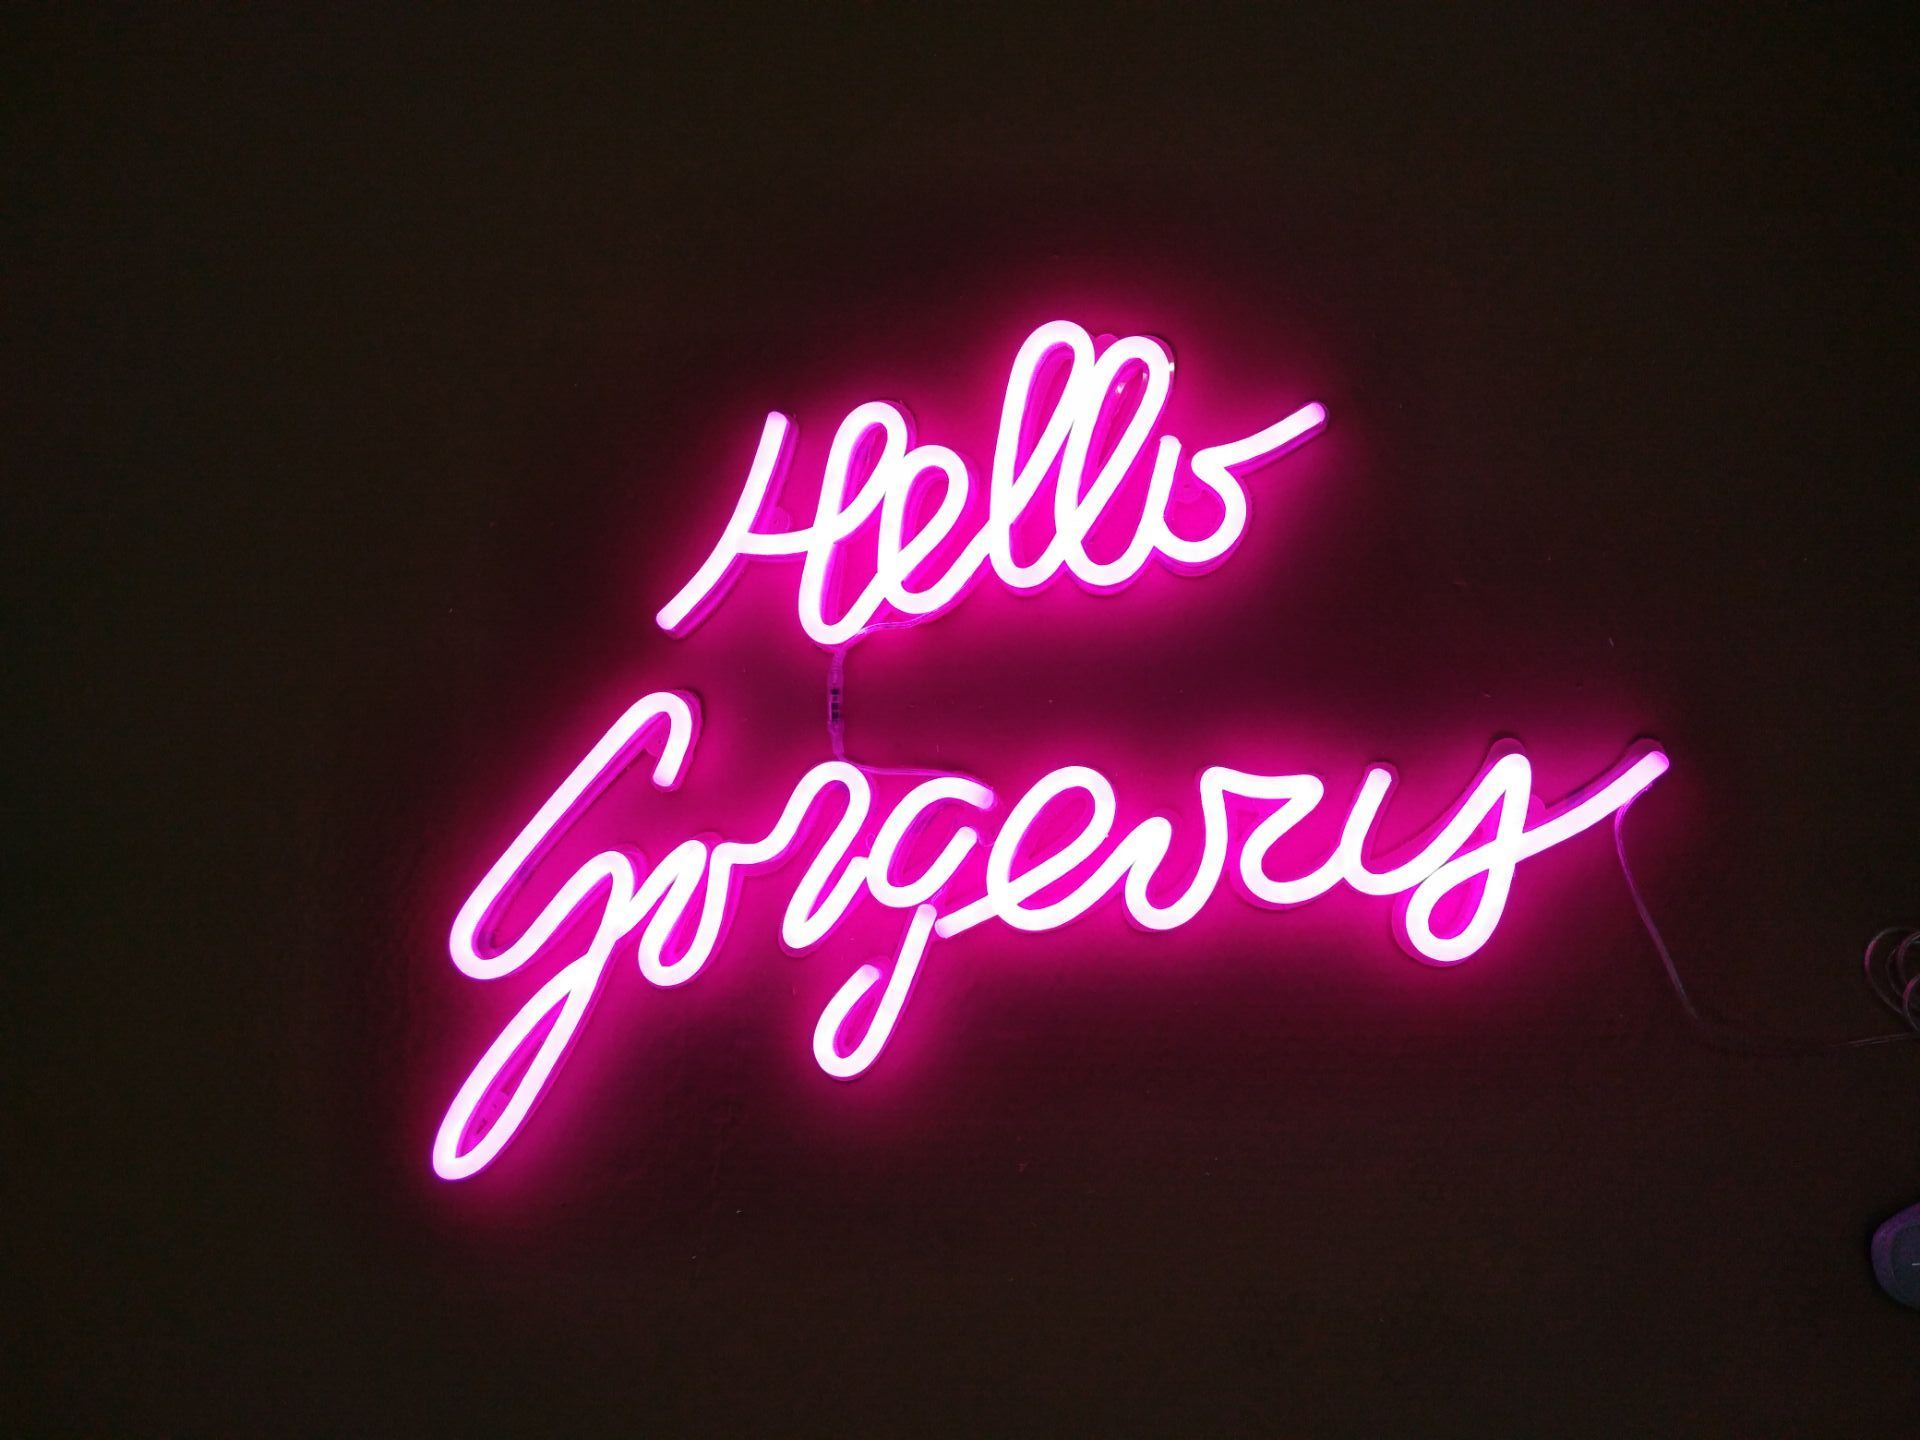 New Hello Gorgeous Neon Sign For Bedroom Wall Decor Artwork Light With Dimmer